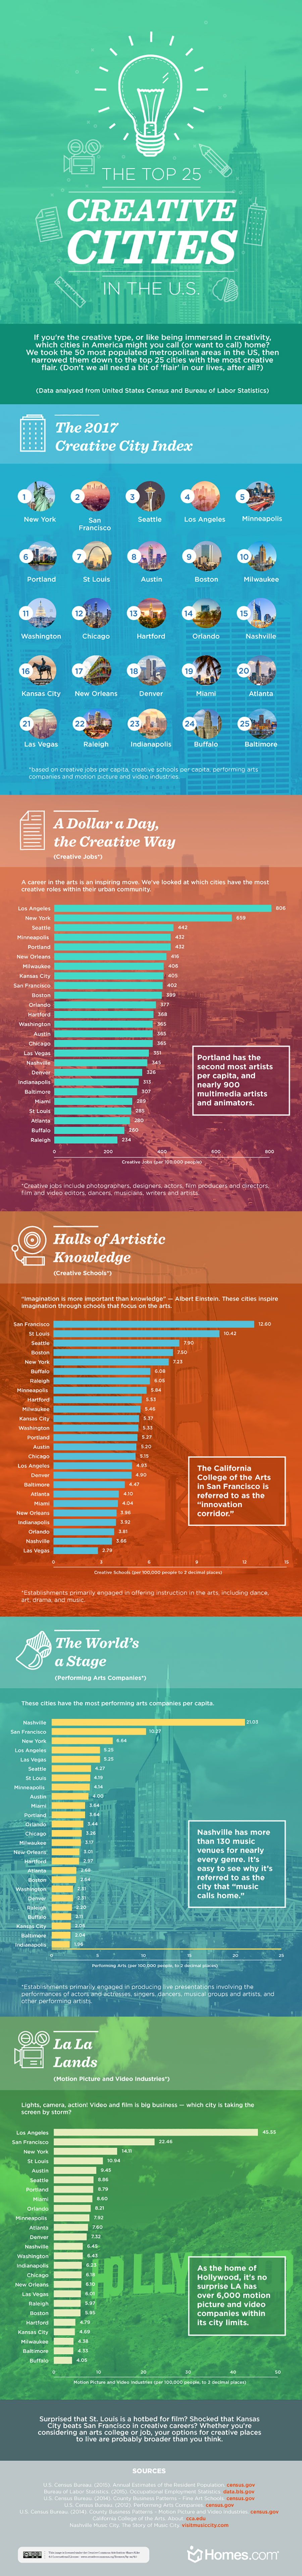 The Top 25 Creative Cities In The U.S